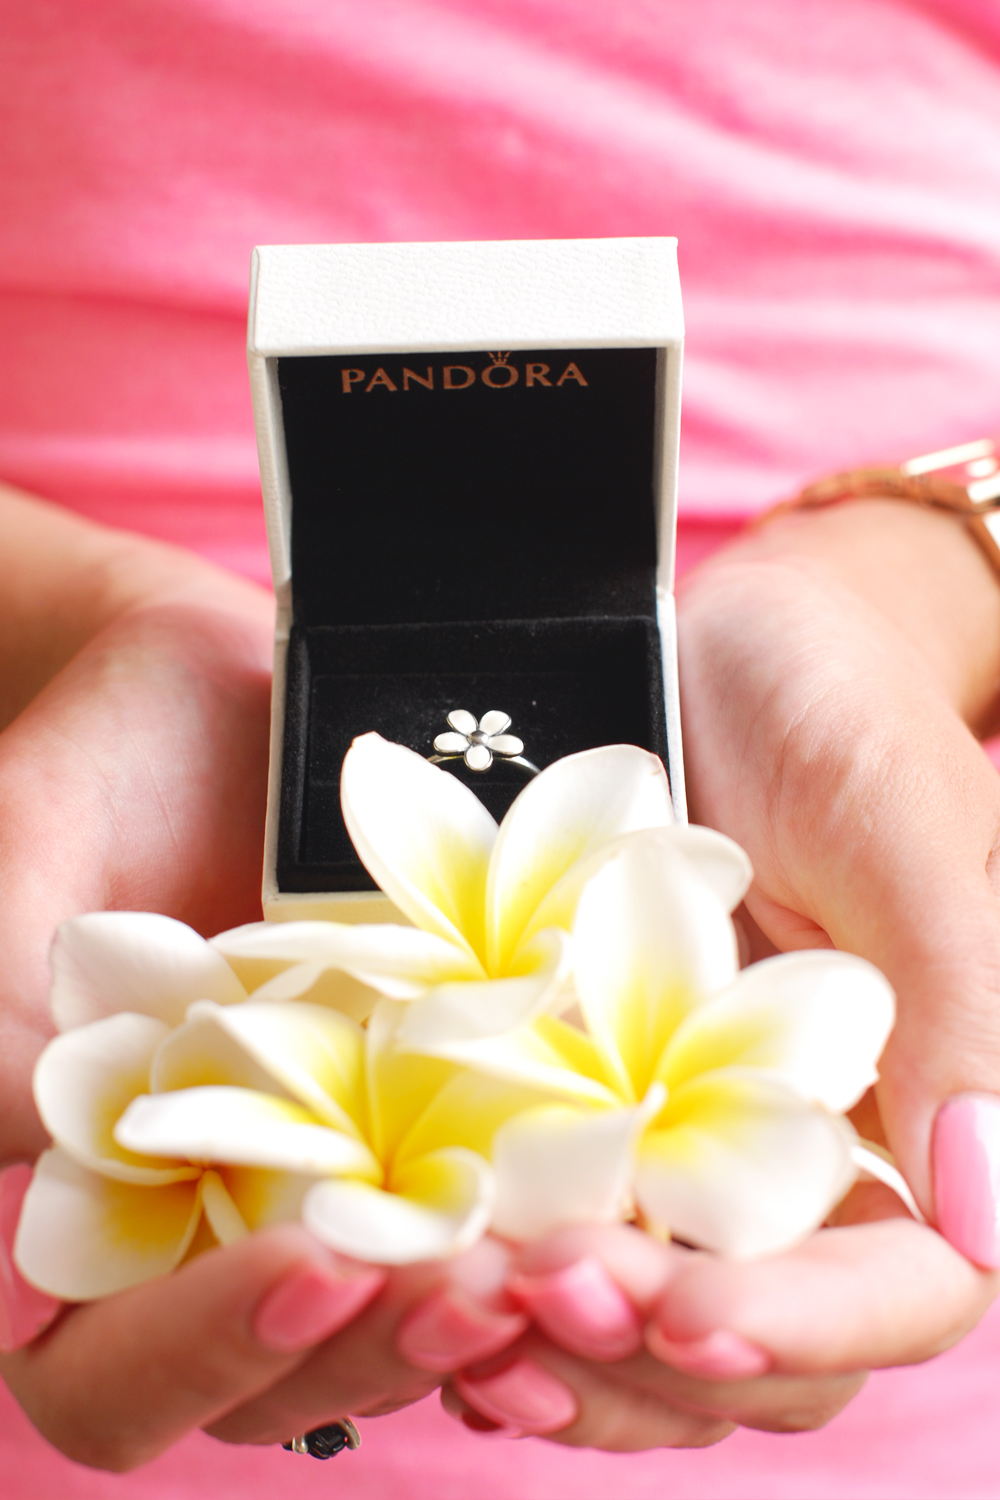 pandora madelief frangipani ring Kuala Lumpur travel reizen memory's herinnering unforgettable moments fashion mode wit lifestyle by linda